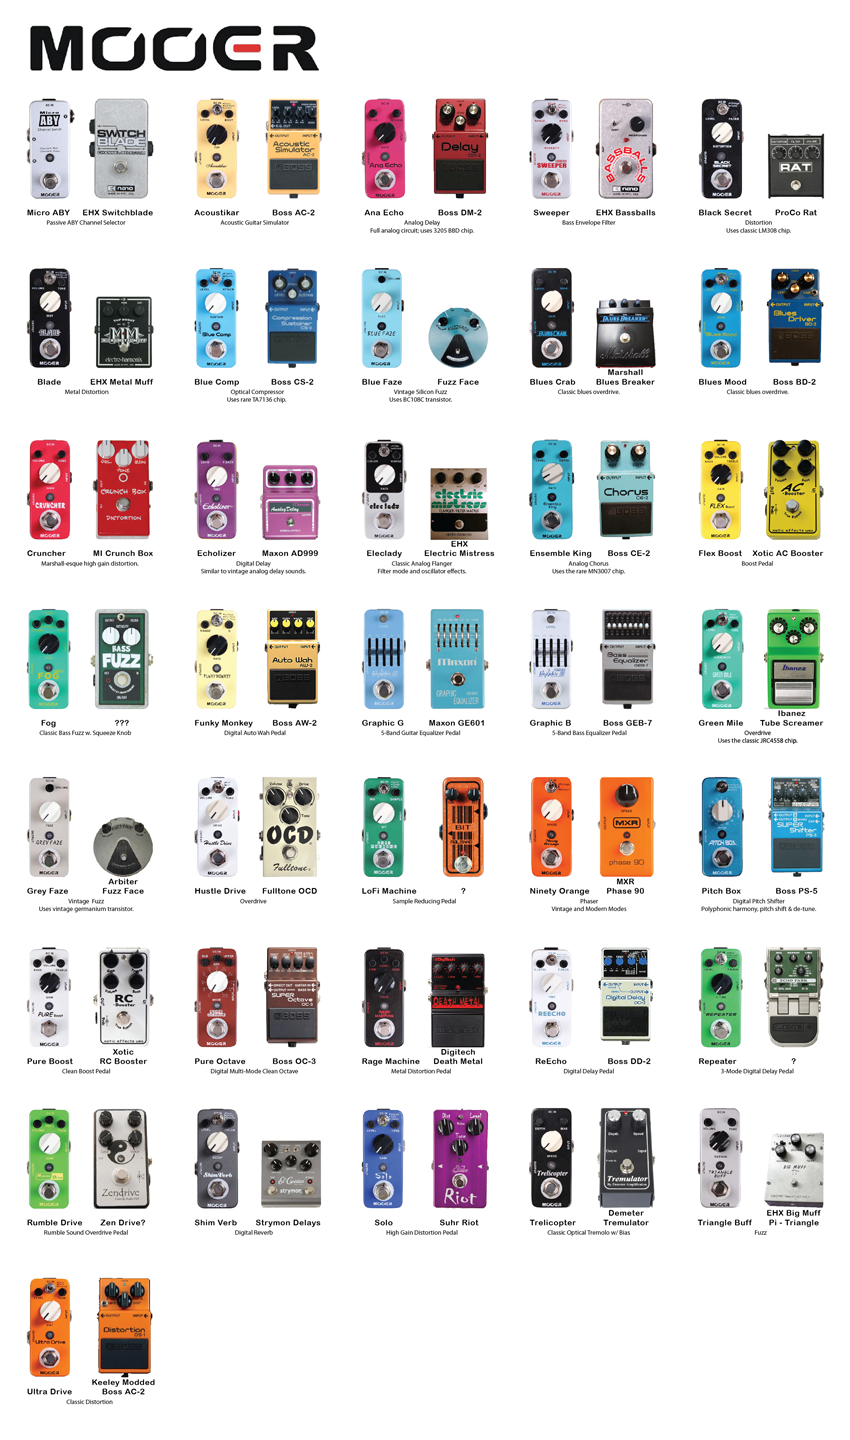 A List Of Guitar Pedal Clones Spartan Music Proco Rat Schematic Inexpensive January 05 2015 1 Comment